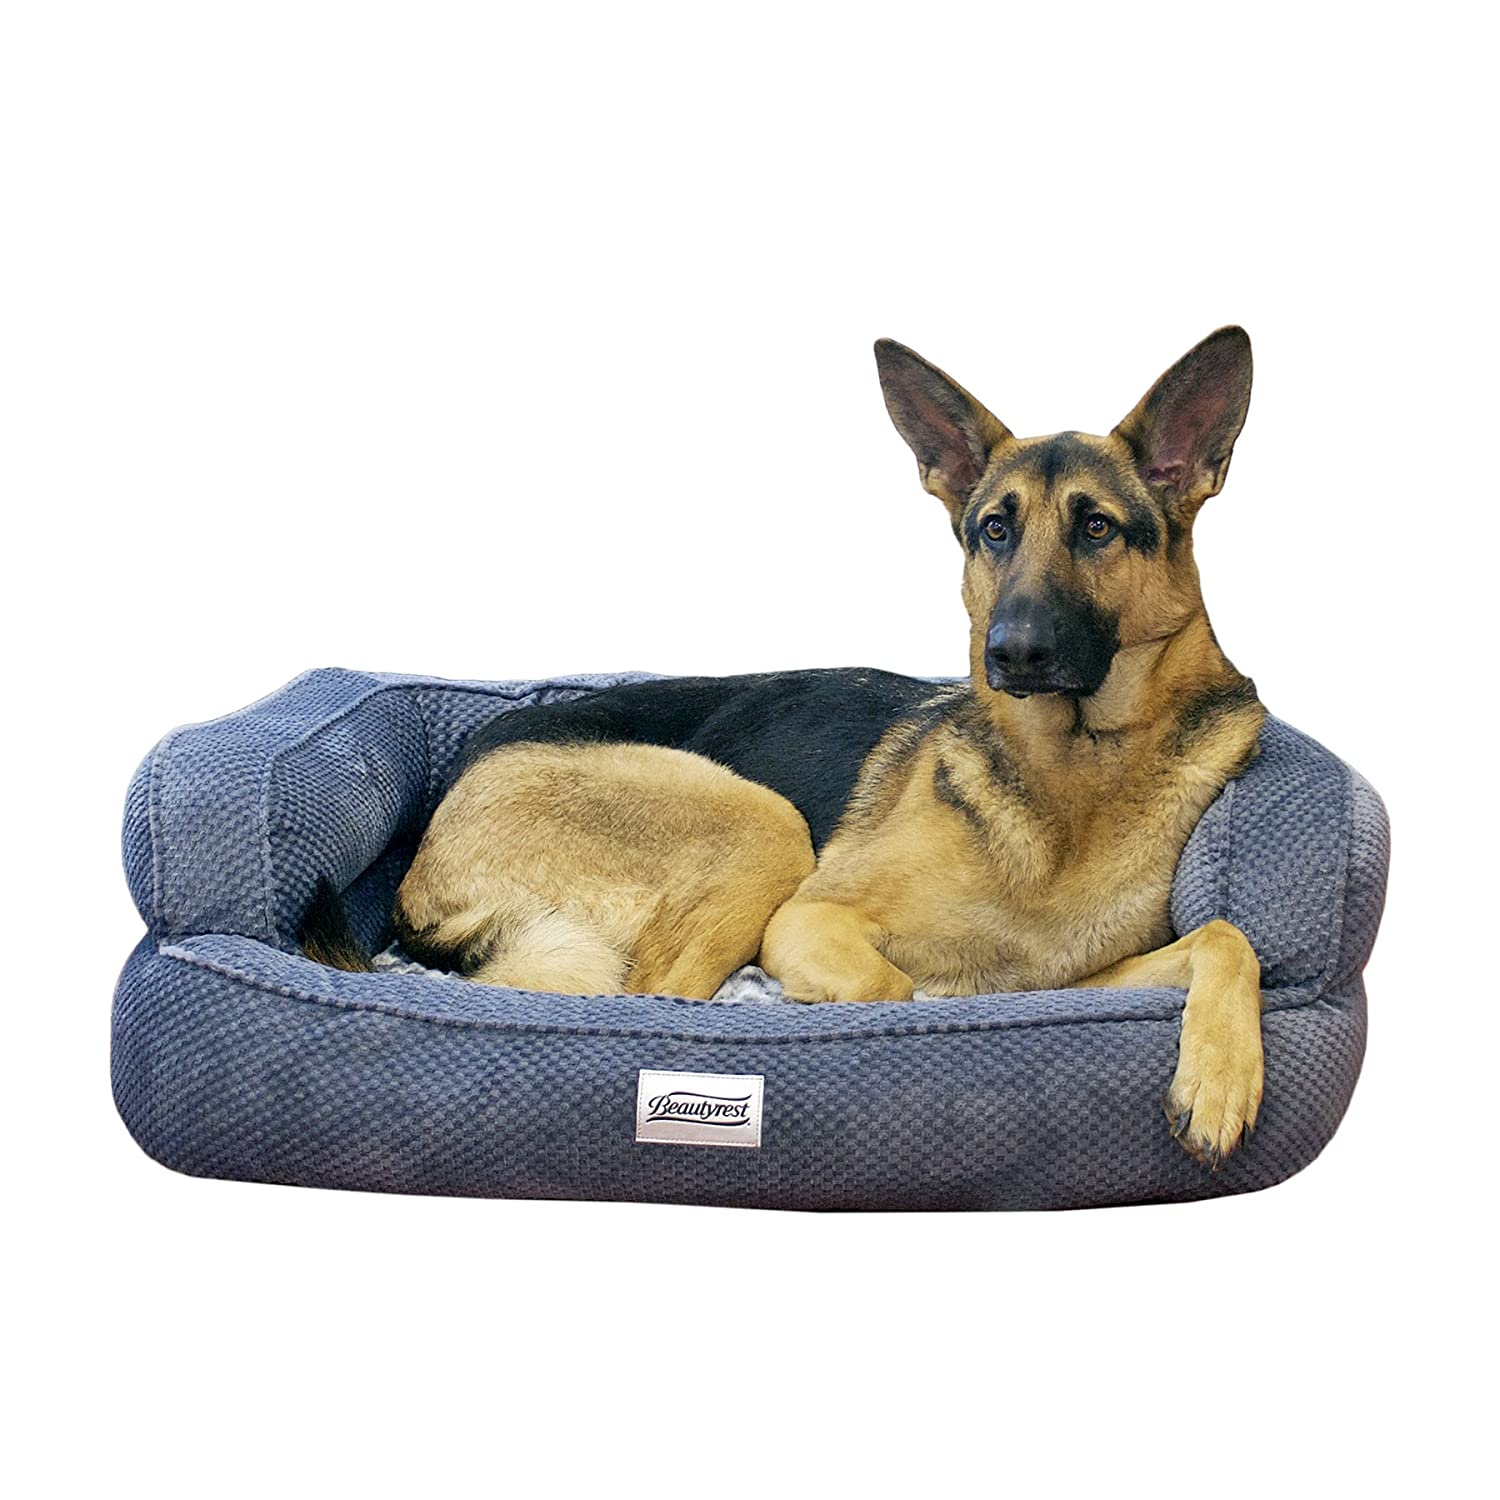 top beds dog care bed with memory foam best dogs reviews